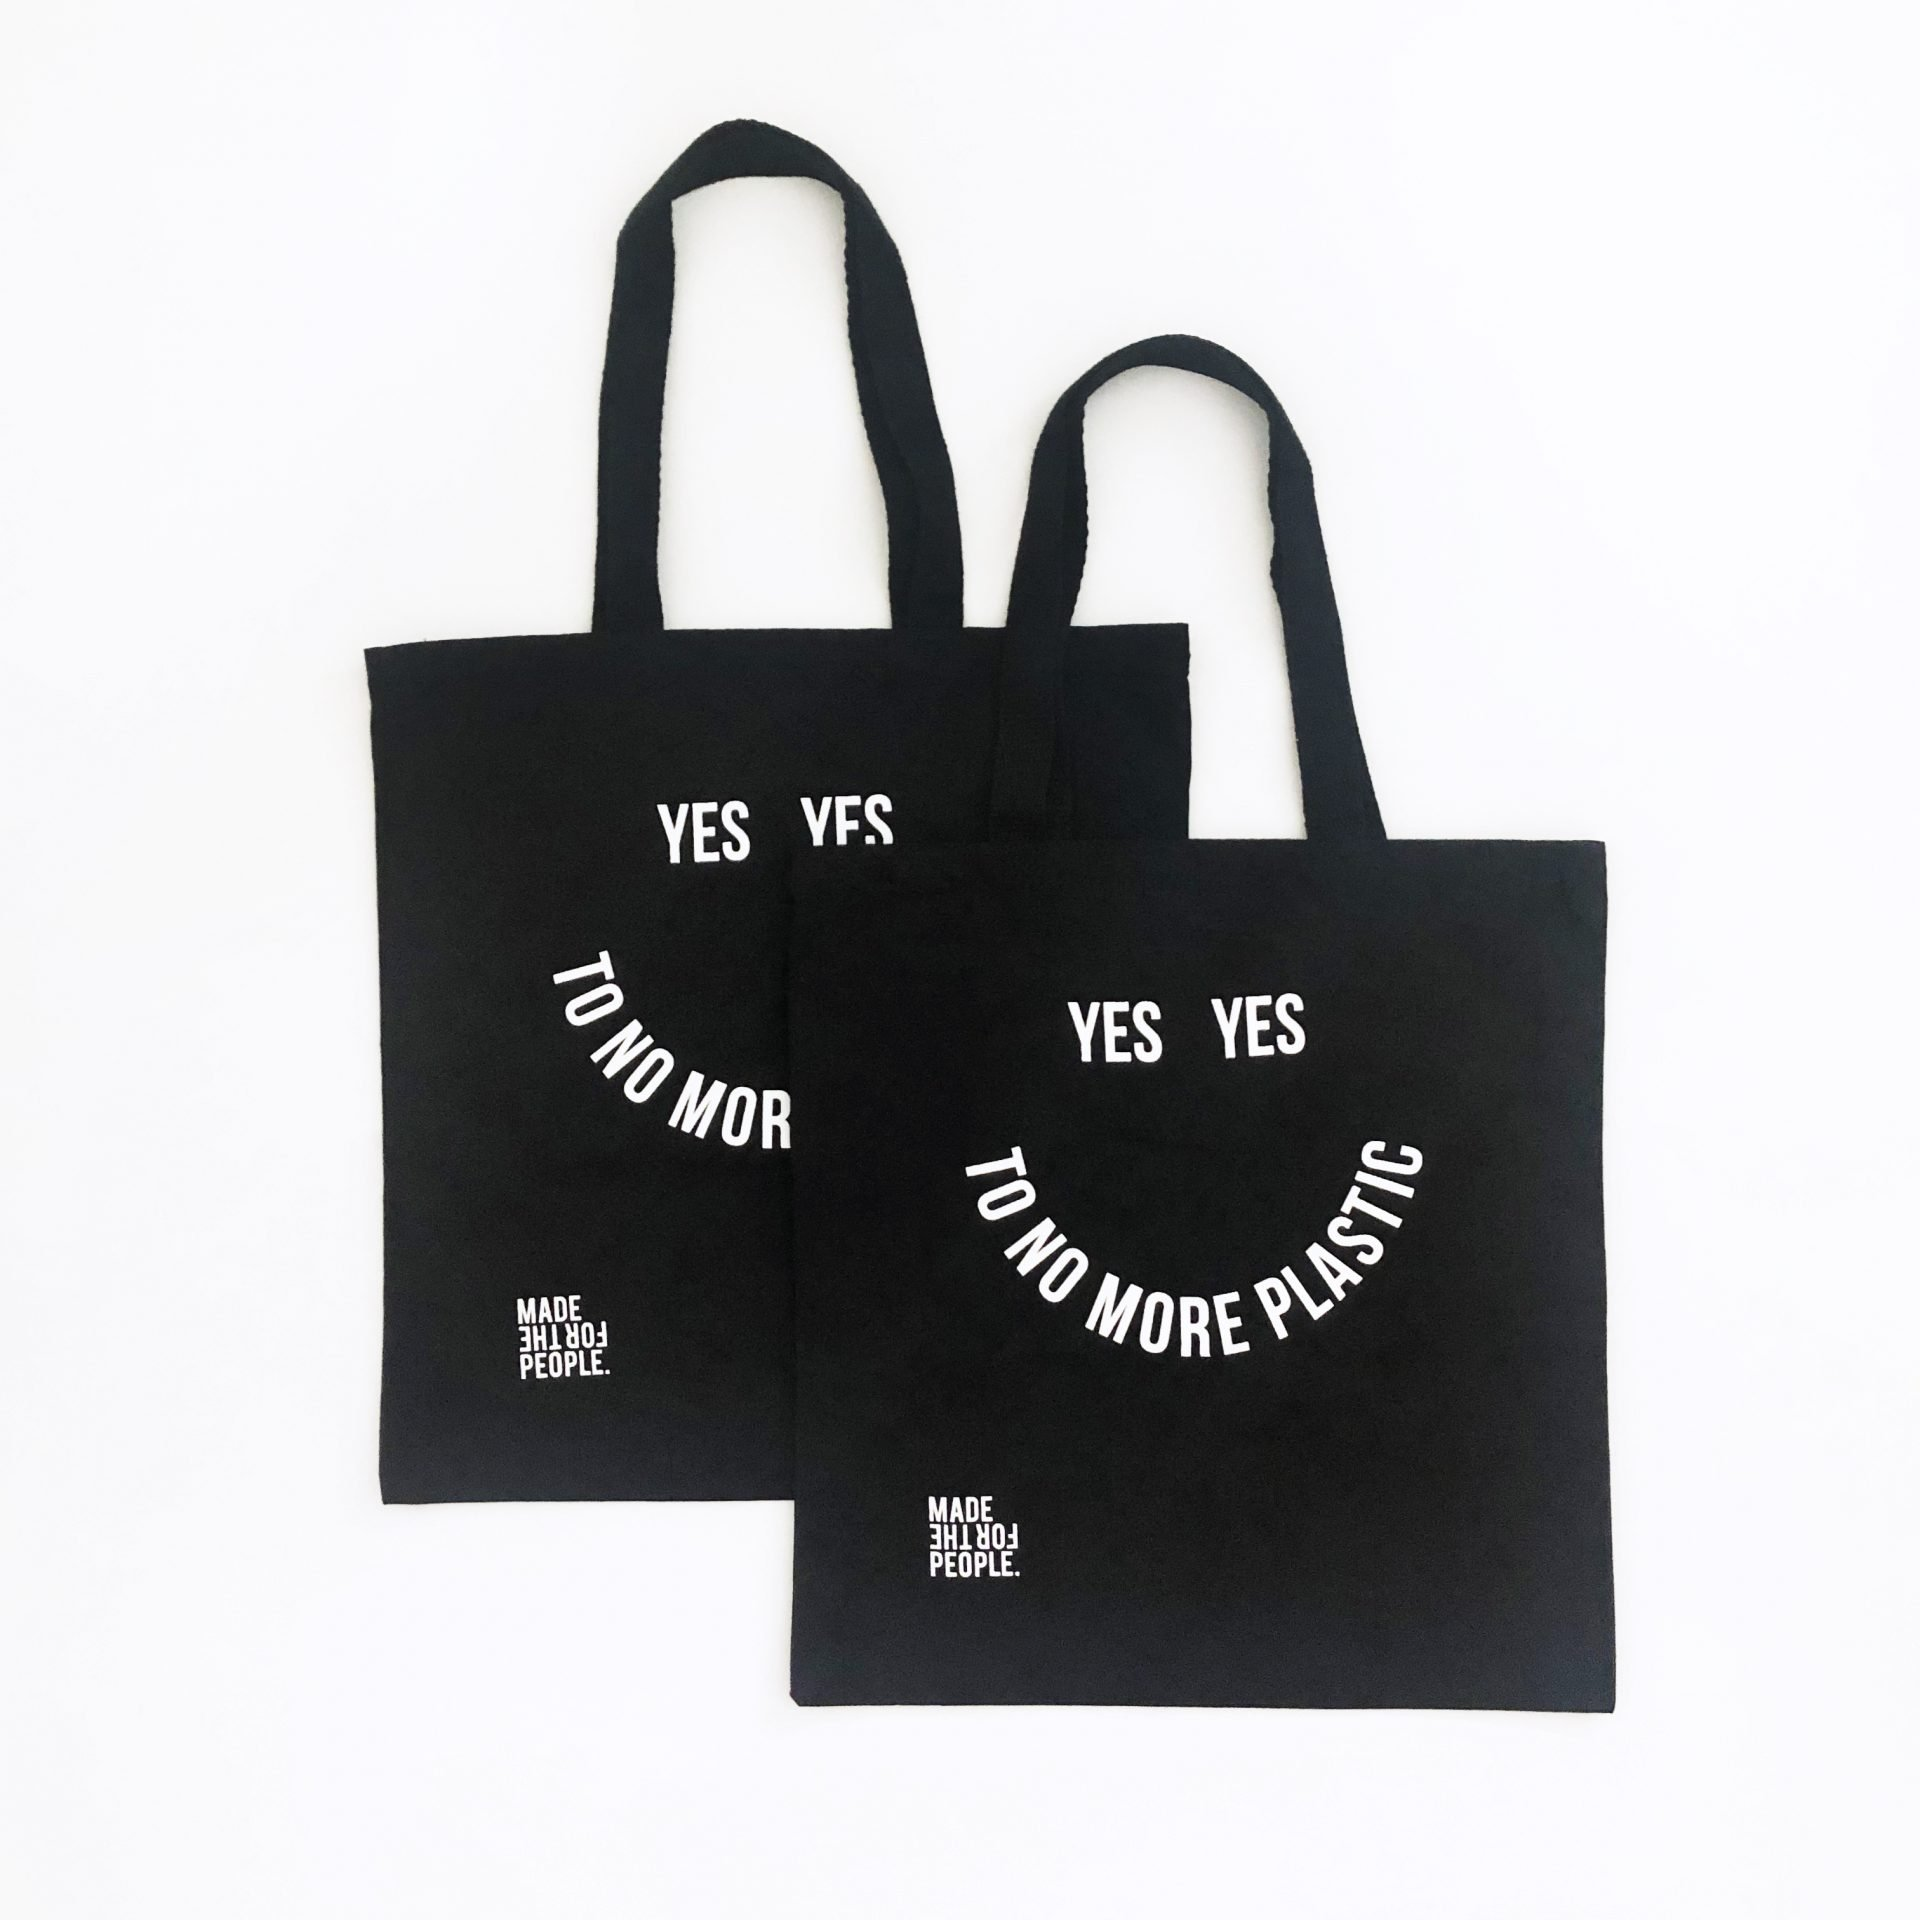 Made For The People - Tote Bag